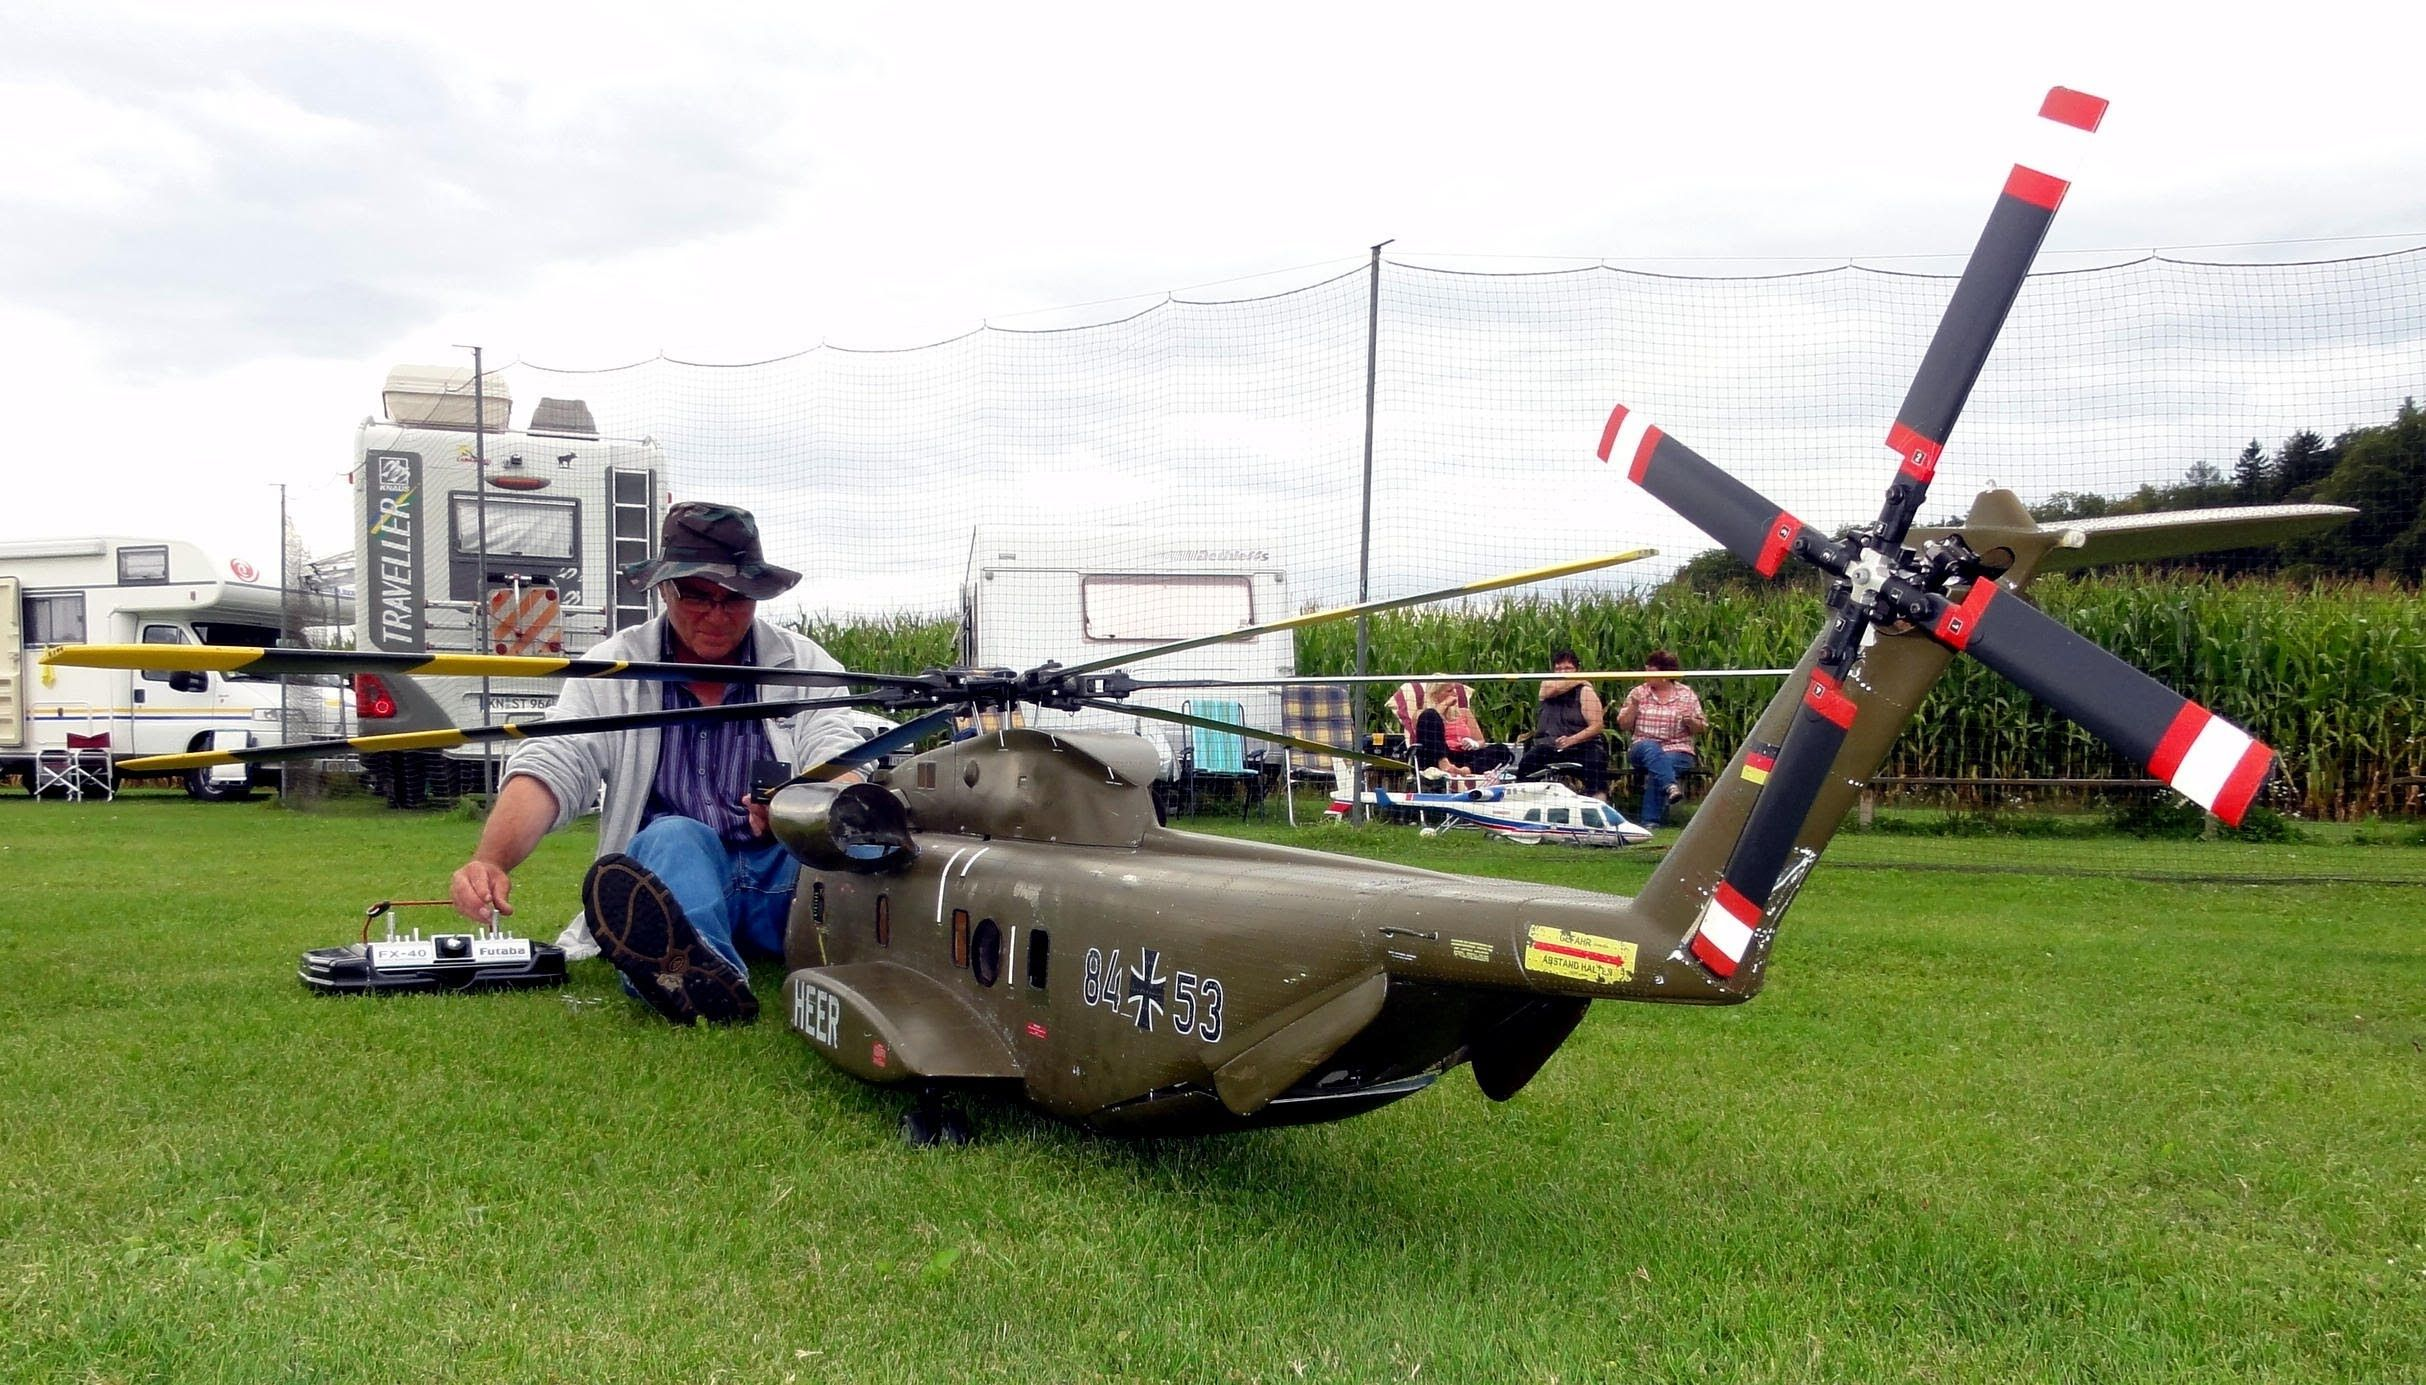 Pin by Sgt Darkness on I N33D THIS SHIT !!!! | Rc helicopter